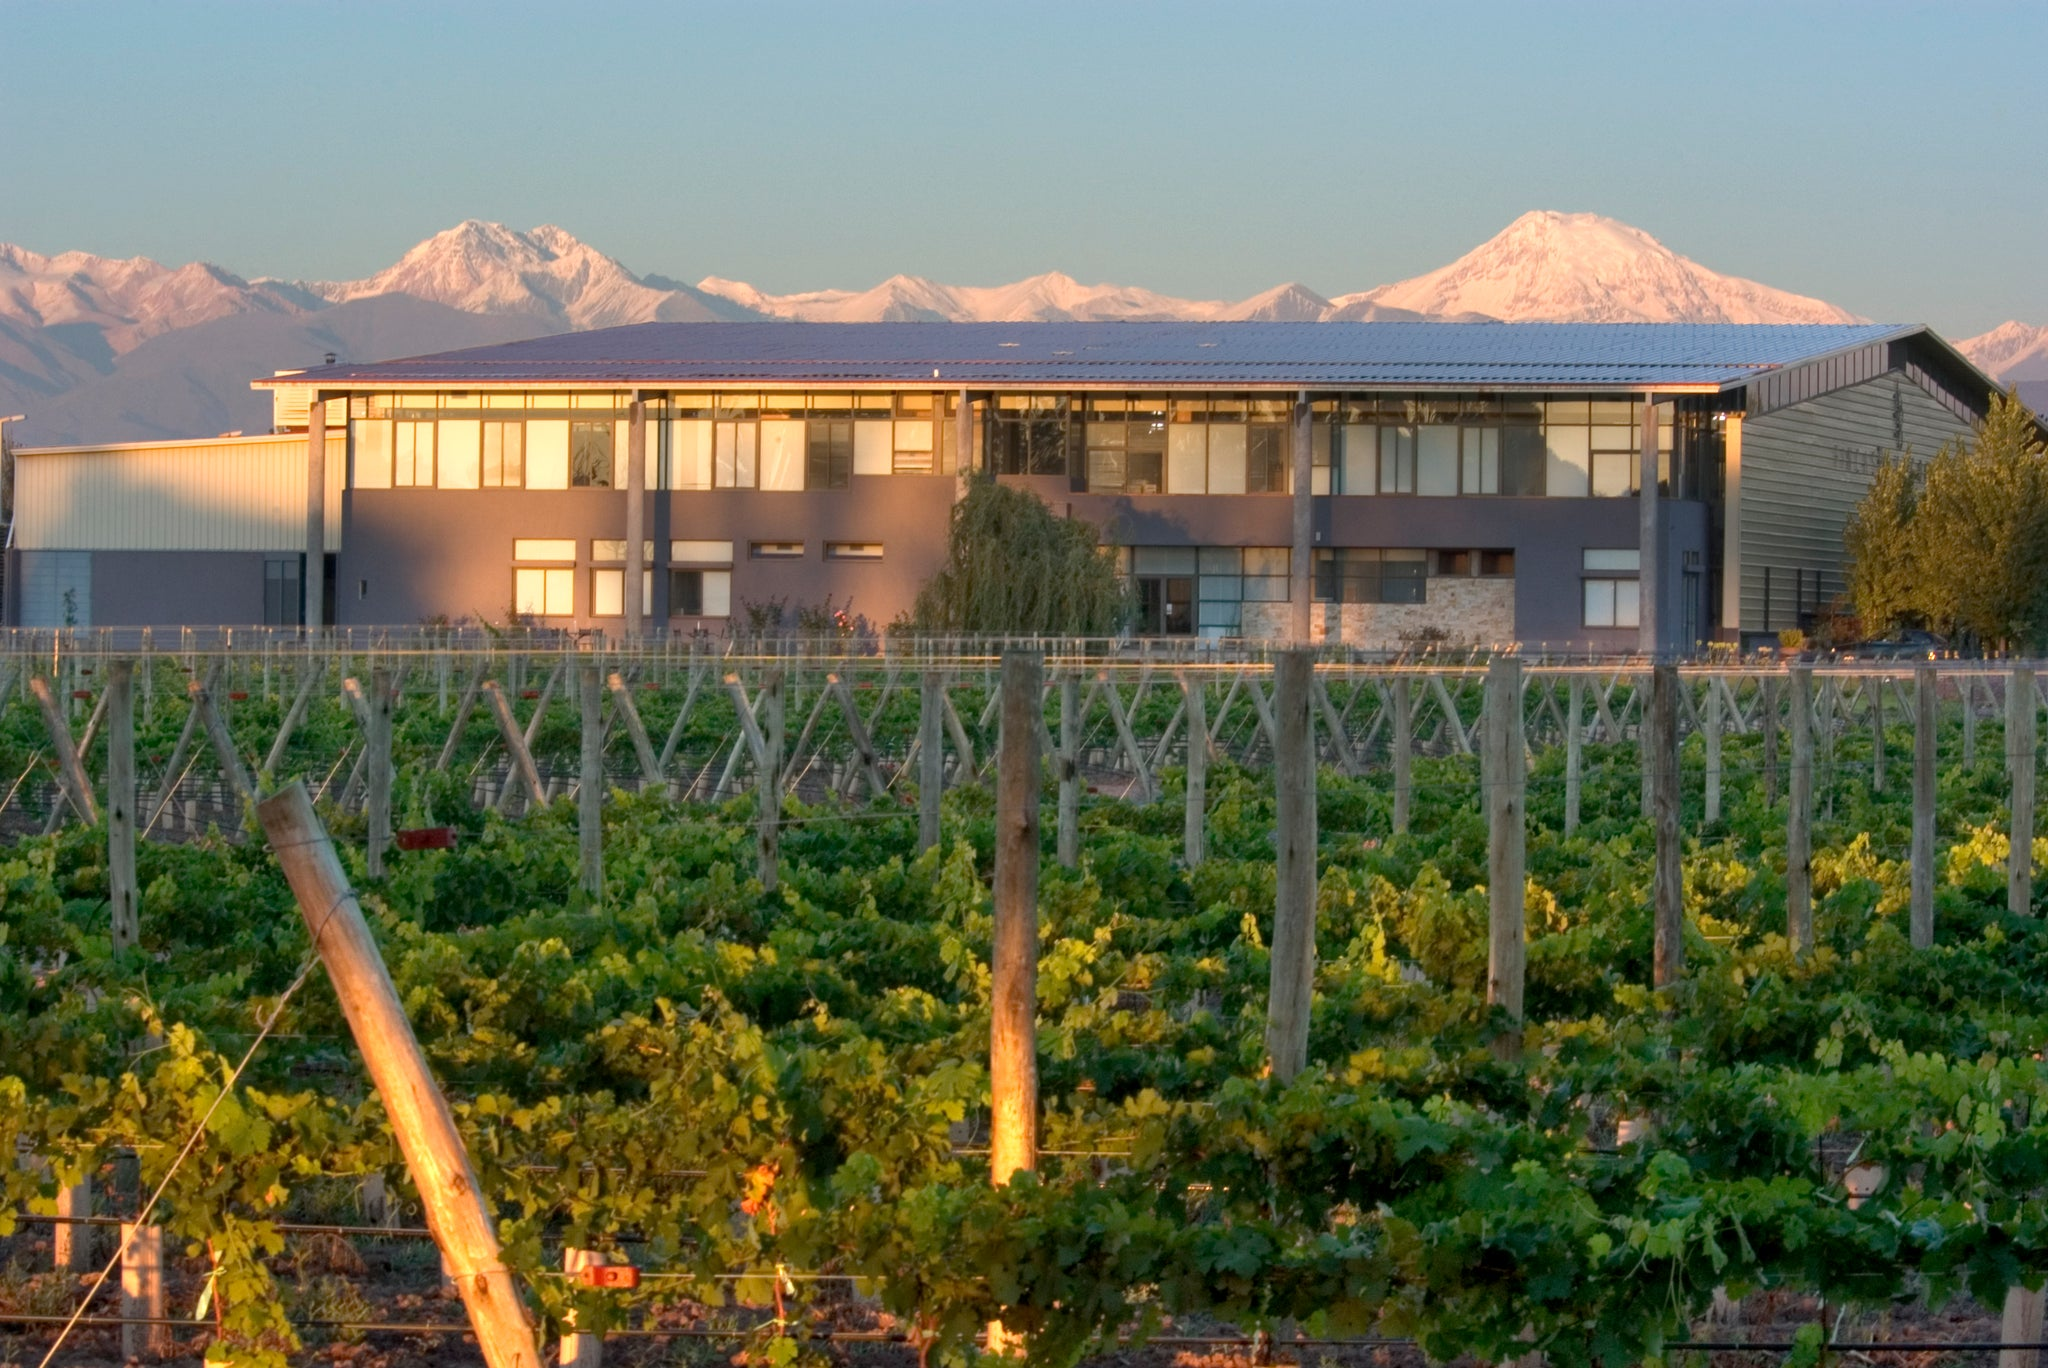 Osmosis Winery and vines